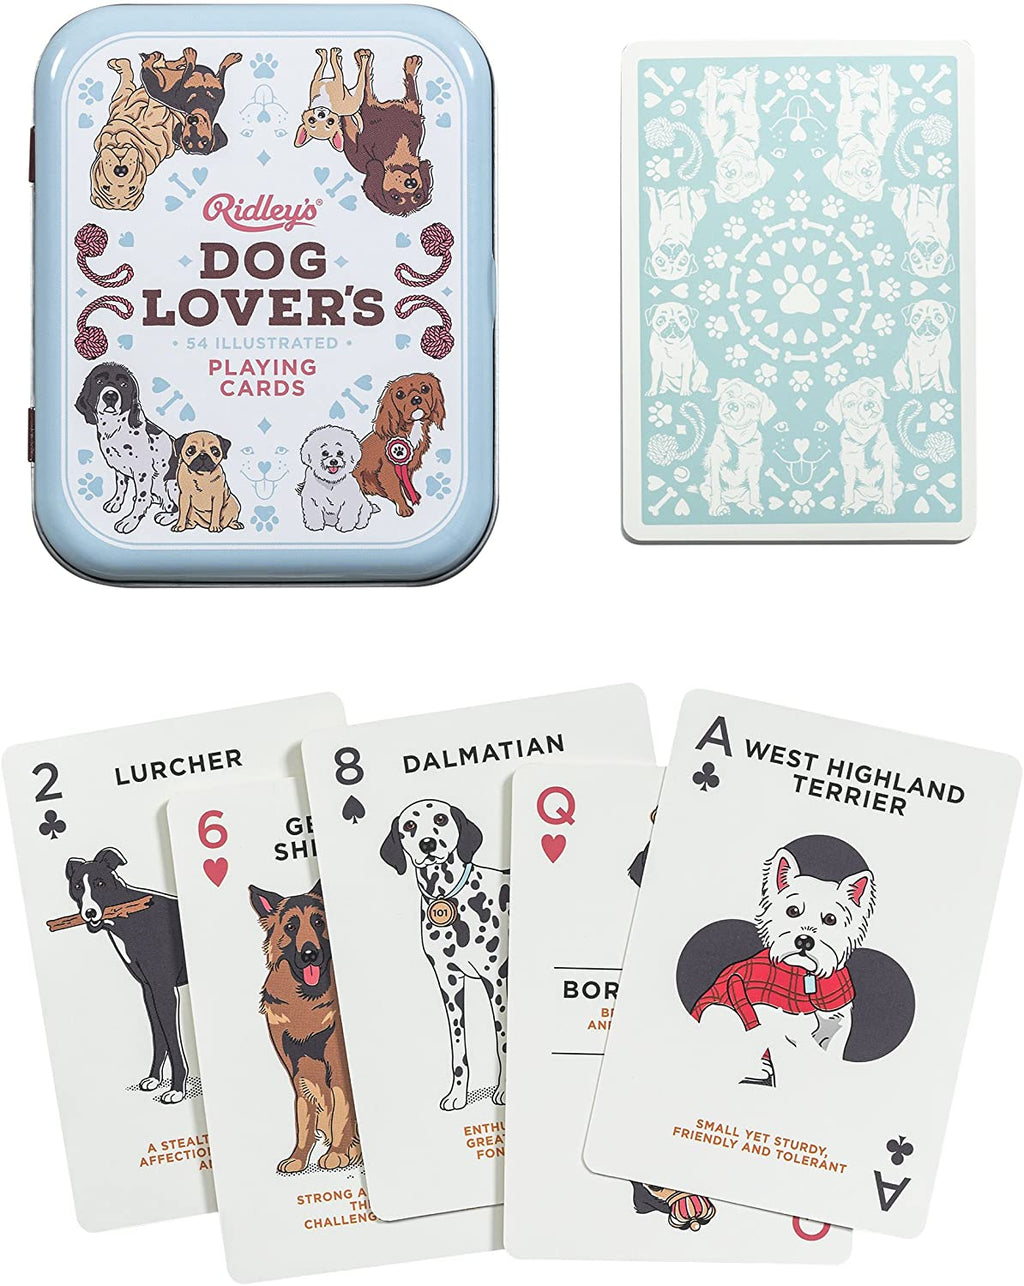 Dog Lover's Playing Cards in a tin